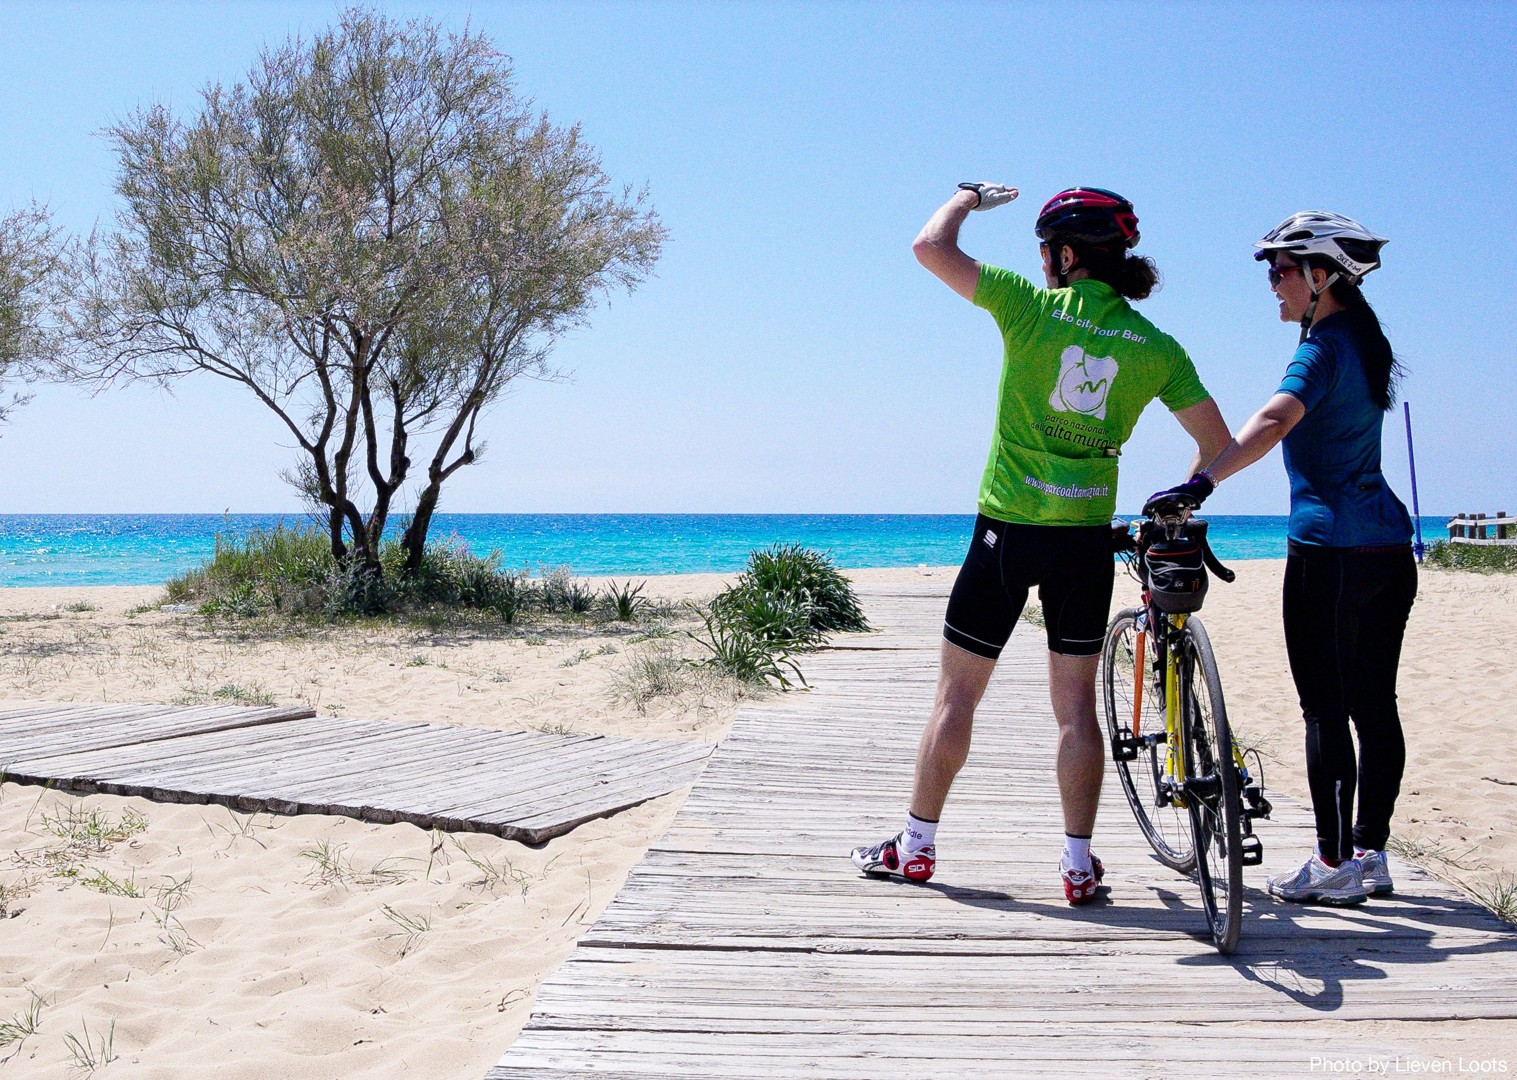 views-italy-coast-puglia-holiday.jpg - Italy - Puglia - The Heel of Italy - Self-Guided Road Cycling Holiday - Road Cycling